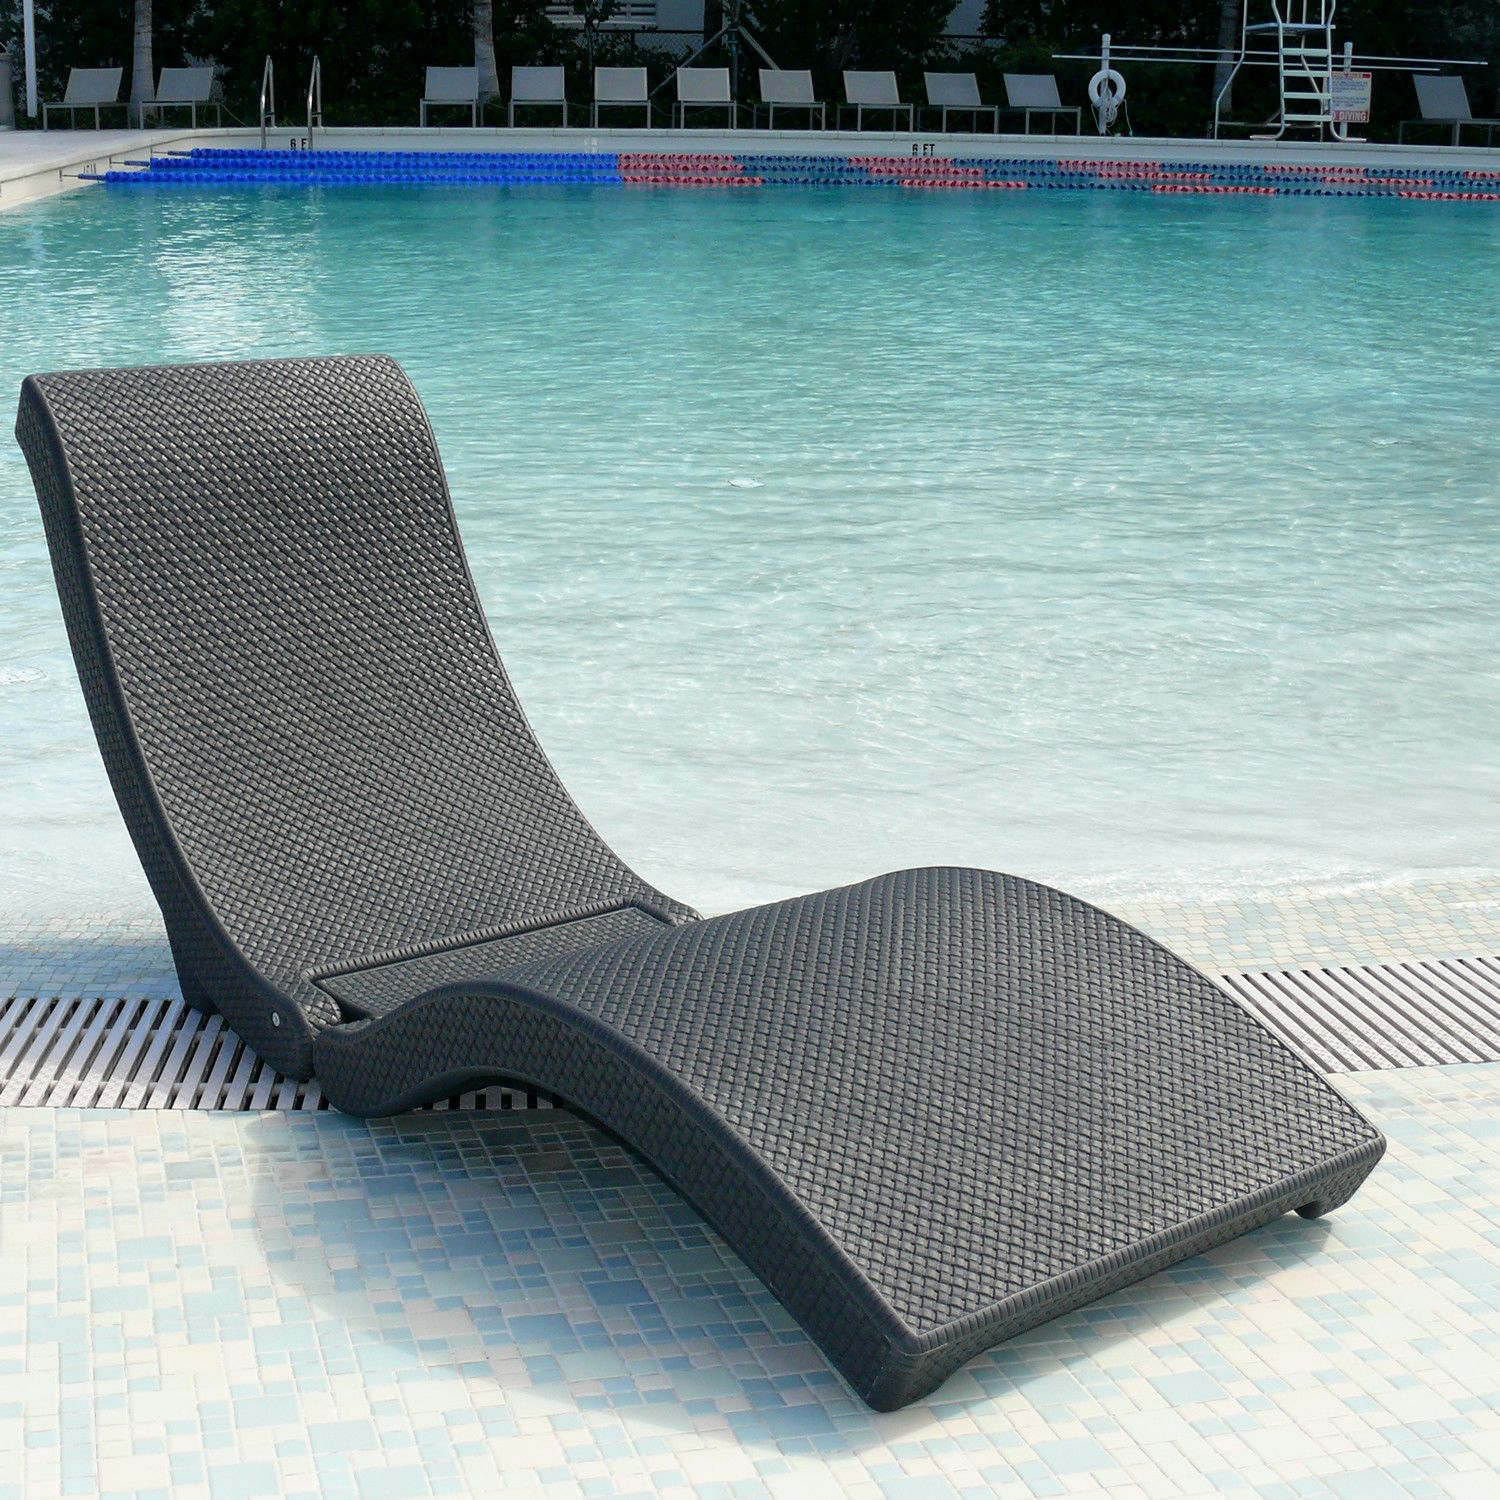 Water in pool chaise lounge chairs outdoor furniture for Garden pool loungers